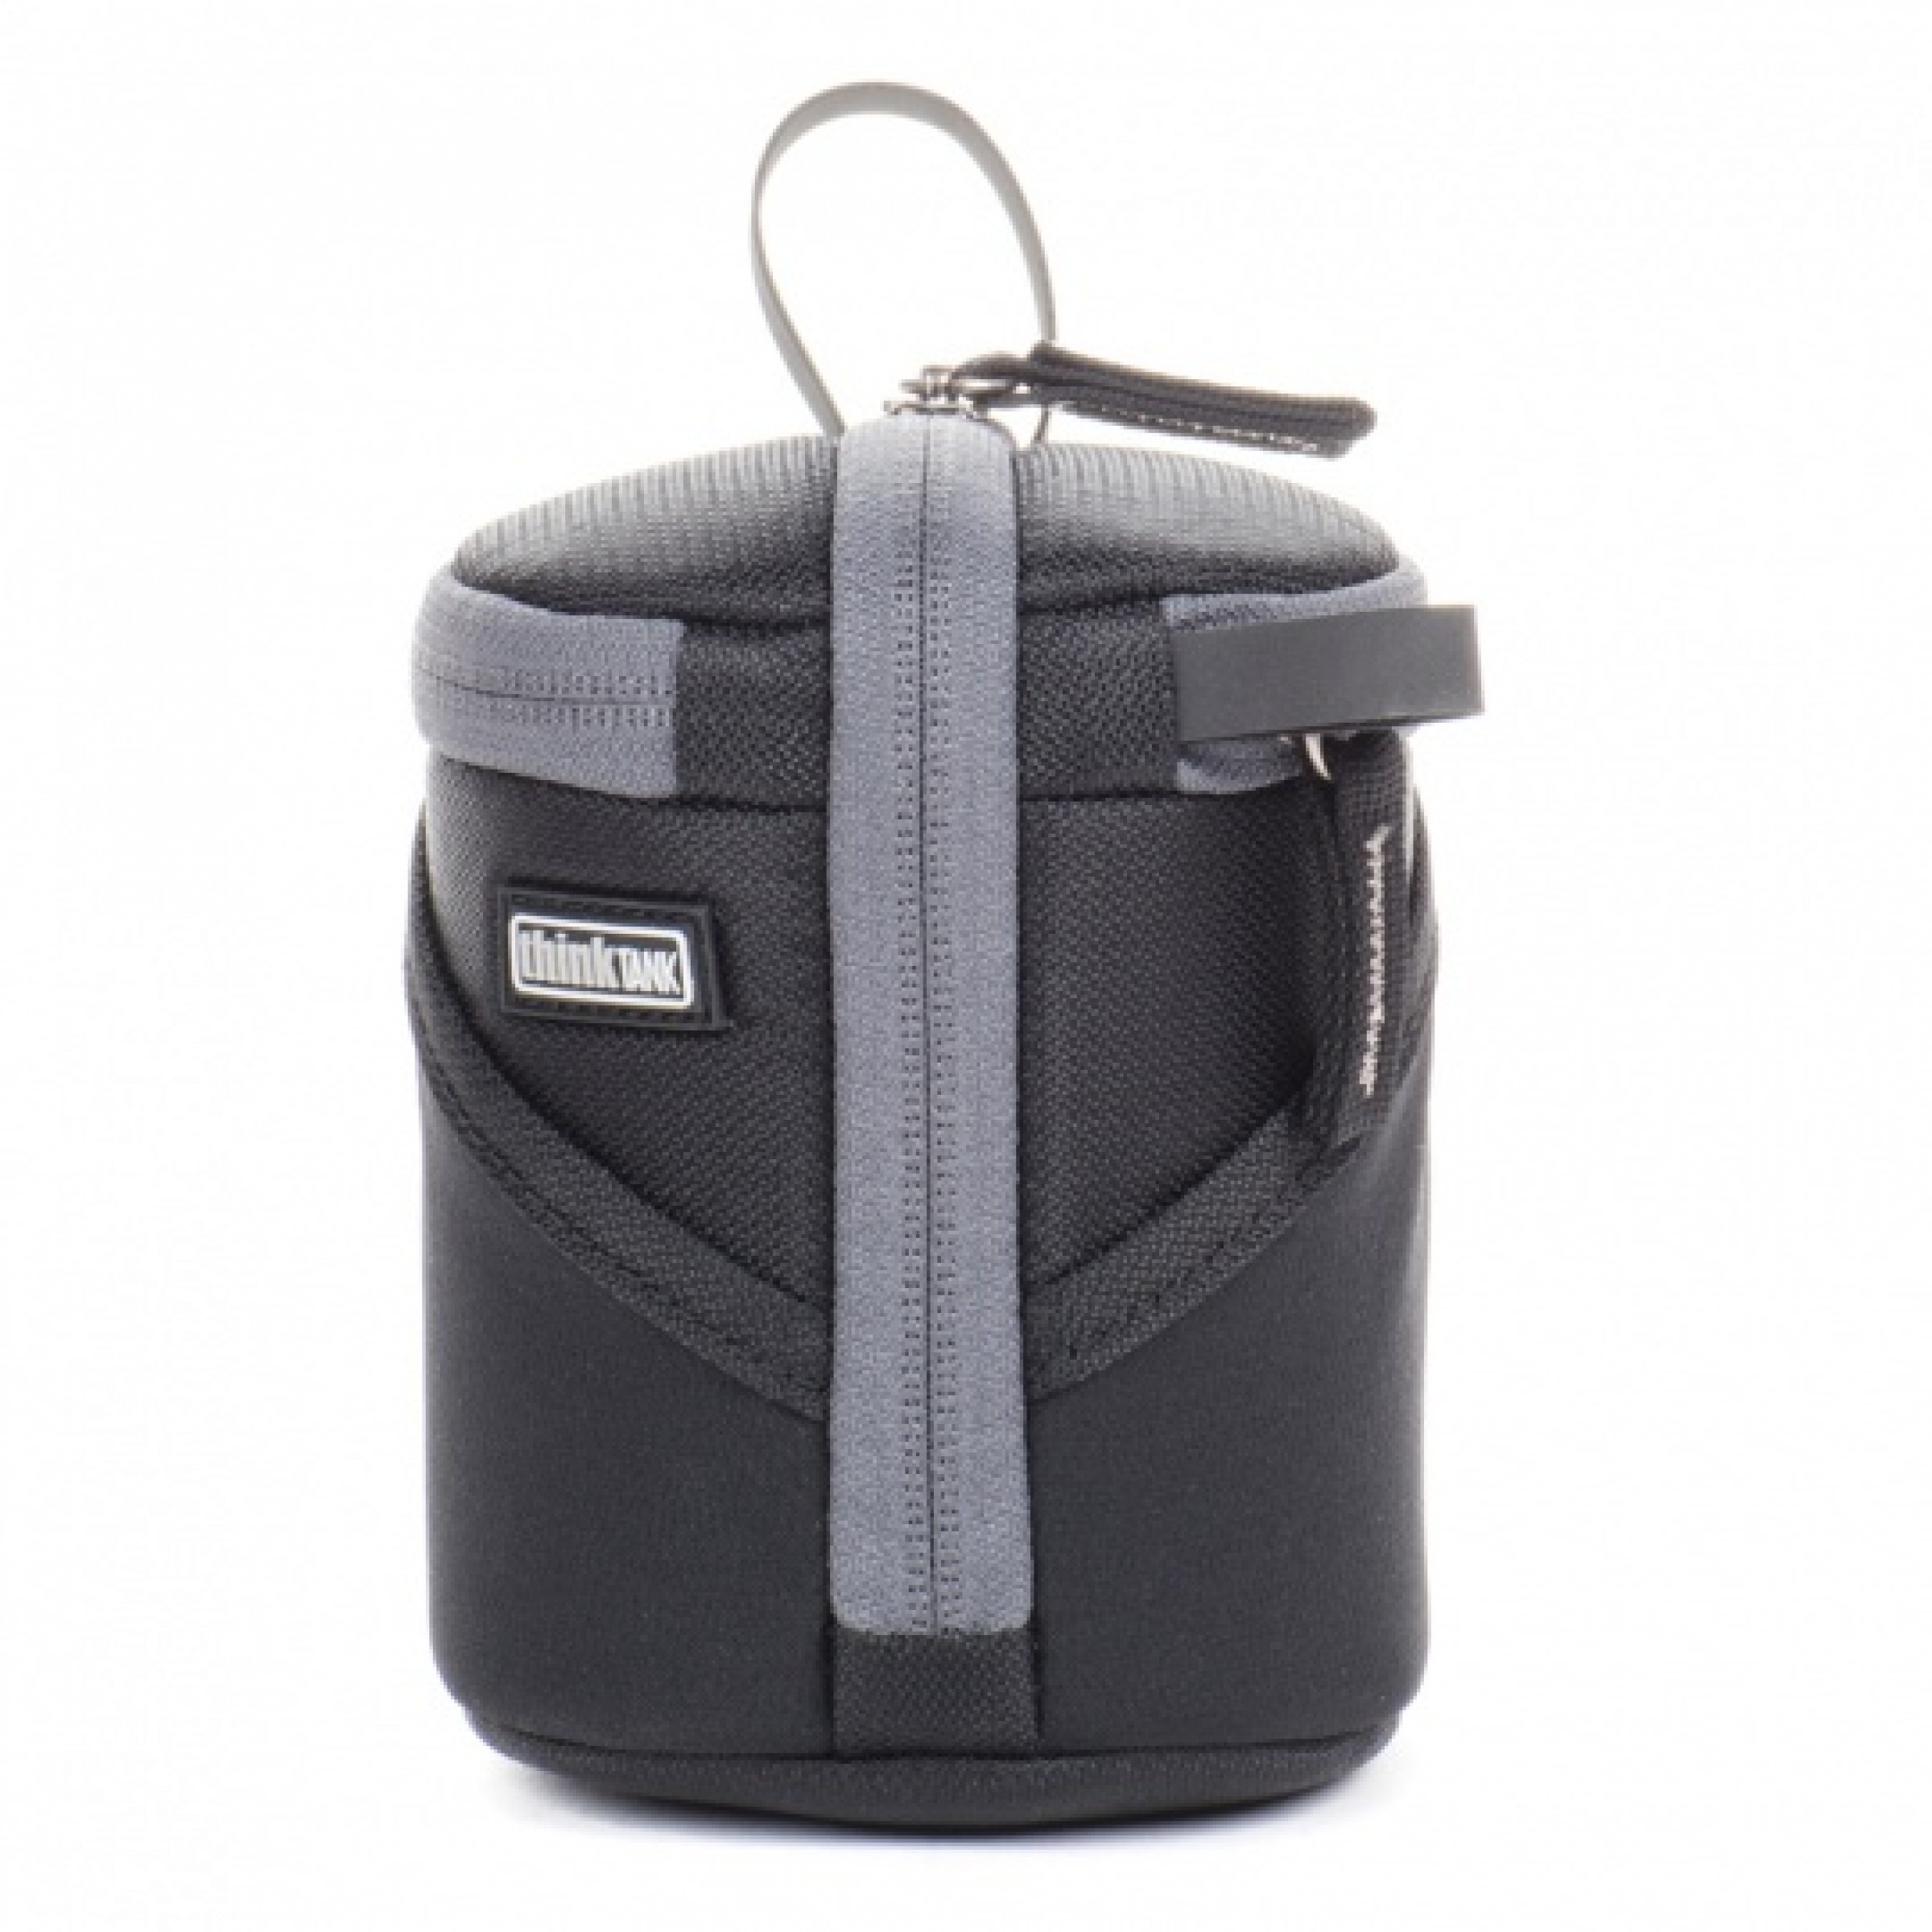 Think-Tank-Lens-Case-Duo-5-black